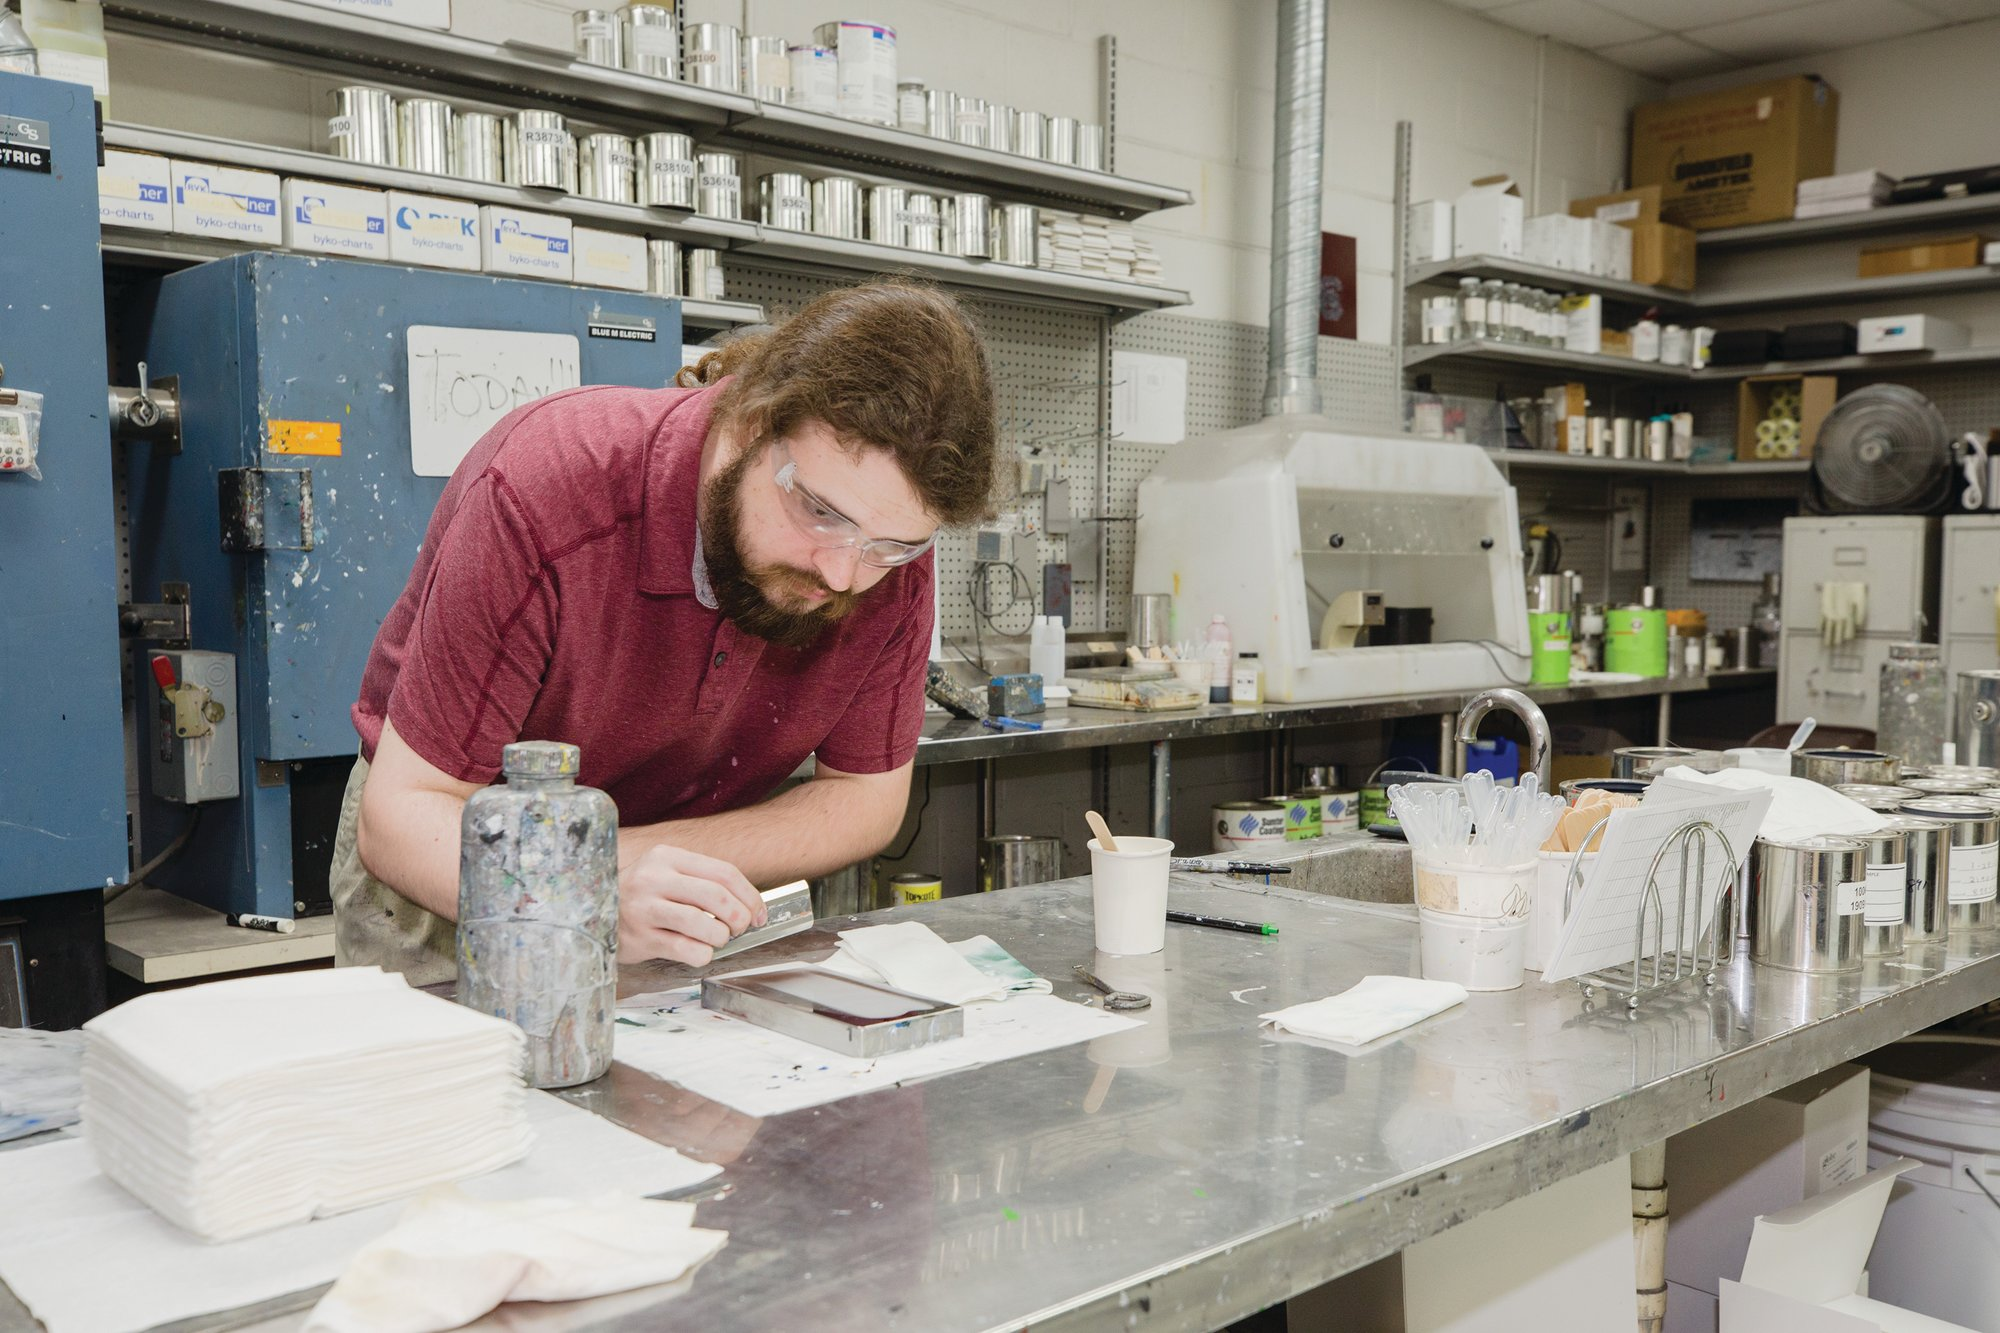 Sumter Coatings' research chemist William Schreiber works in the manufacturer's research and development lab recently. Sumter Coatings made hand sanitizer with an FDA-approved formula for the local community and its customers.